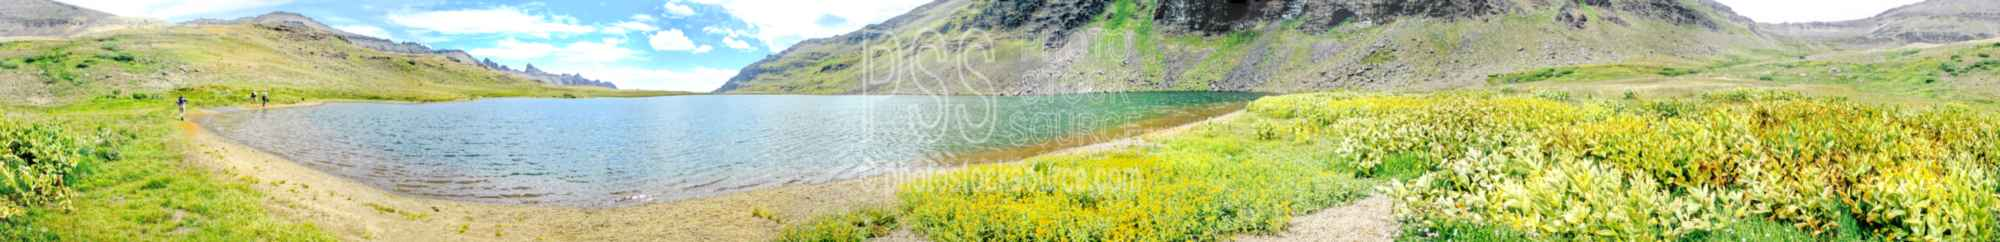 Wildhorse Lake Shoreline,panorama,wildhorse lake,trail,usas,panoramas,lakes panoramas